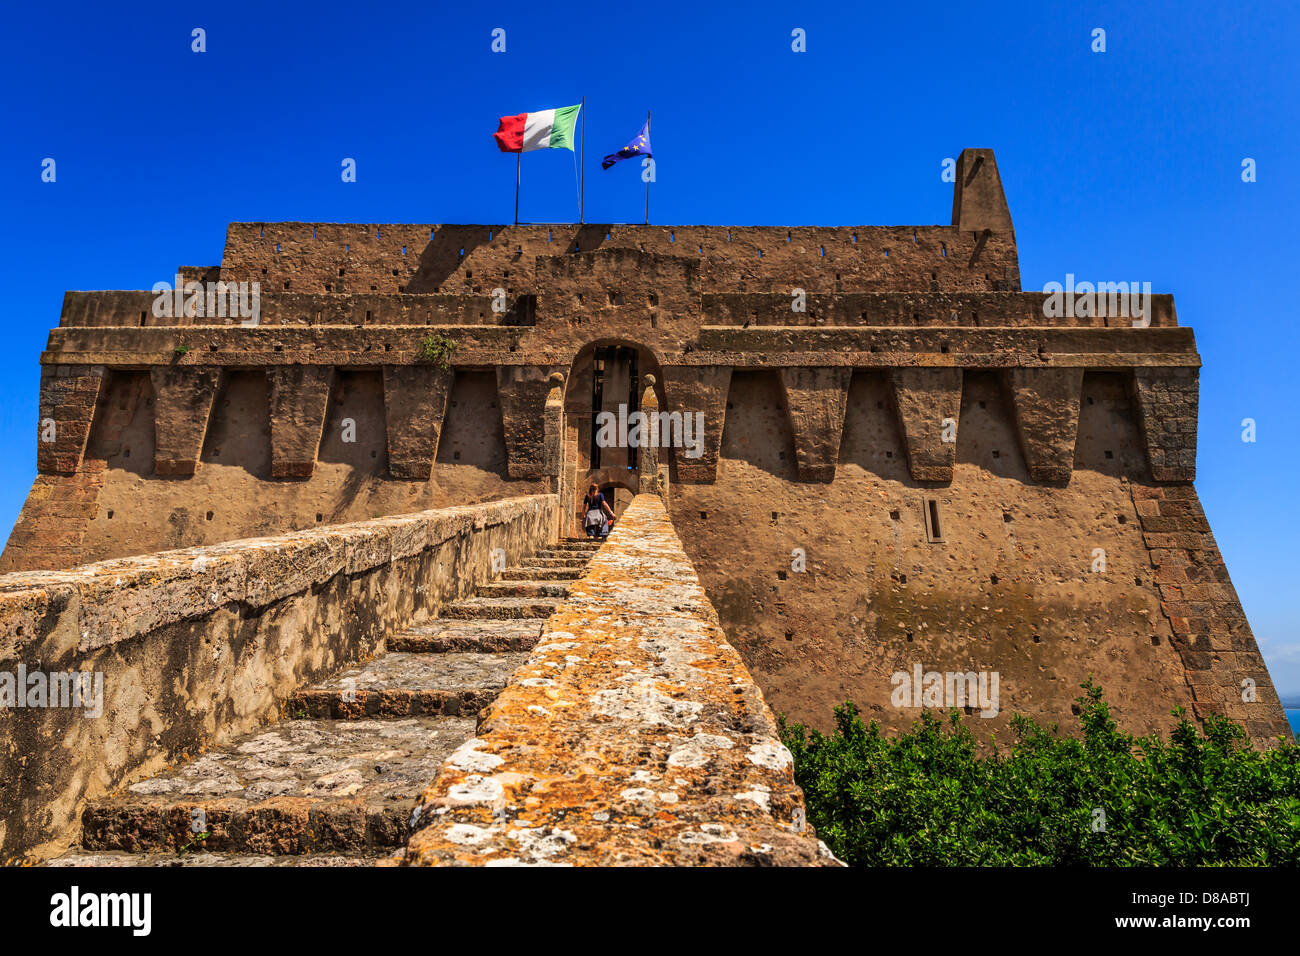 The Spanish Fort in Porto Santo Stefano, Monte Argentario, Maremma, Grosseto Province, Tuscany, Italy Stock Photo